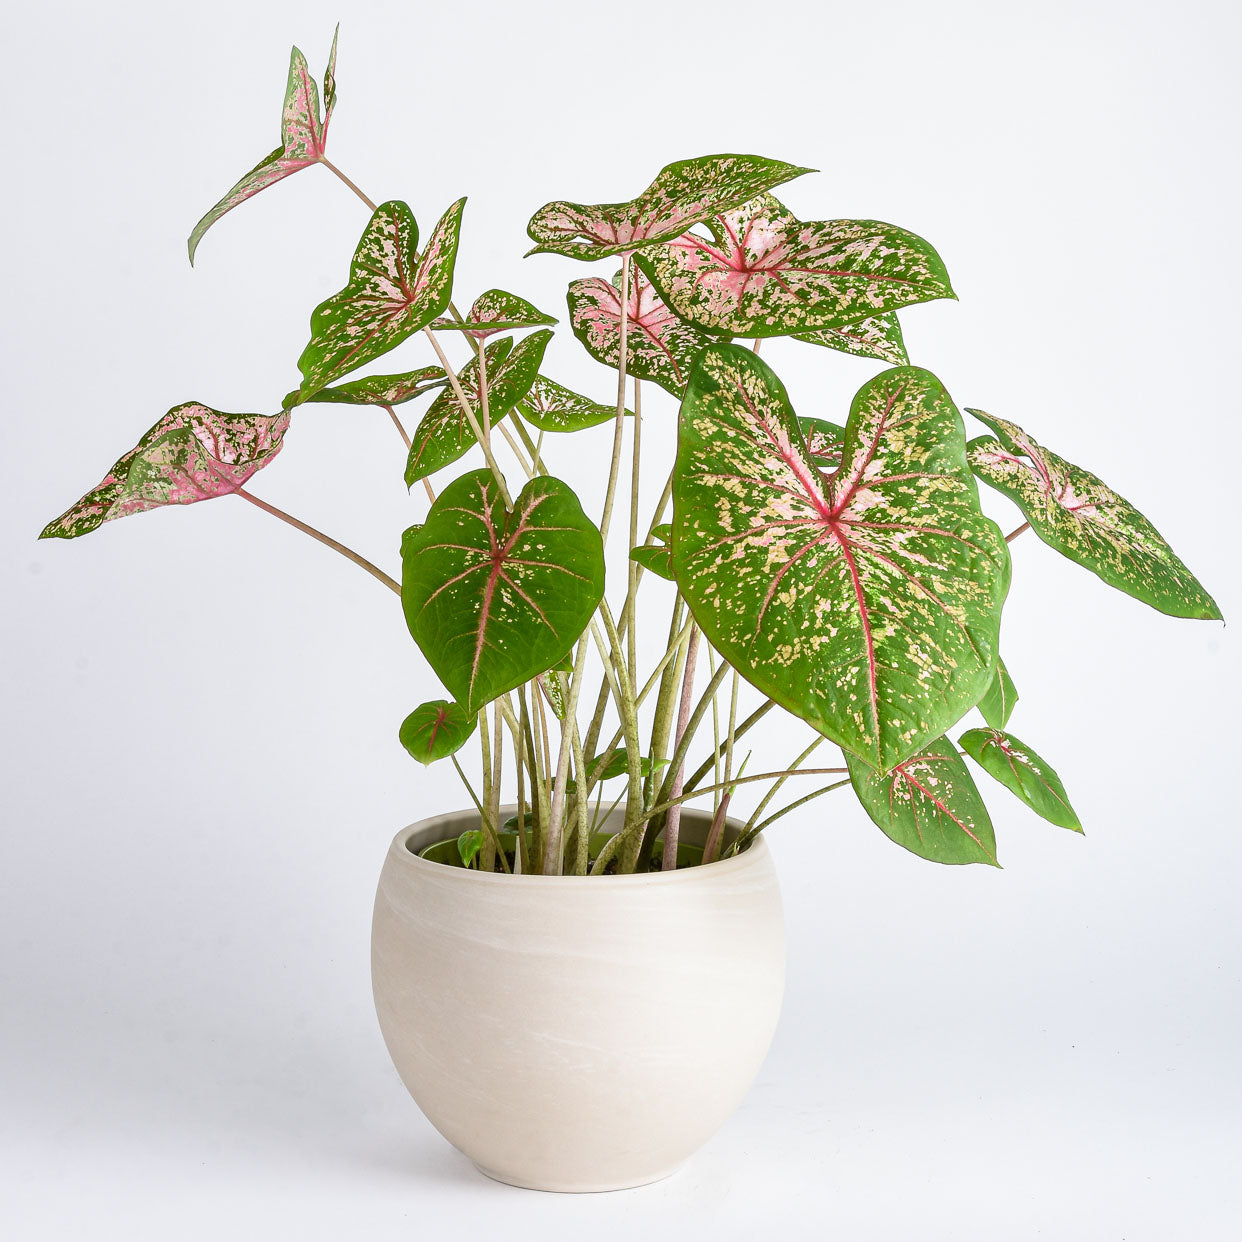 Growing and Caring for Tropical Bulbs - Caladium 'Pink Beauty'